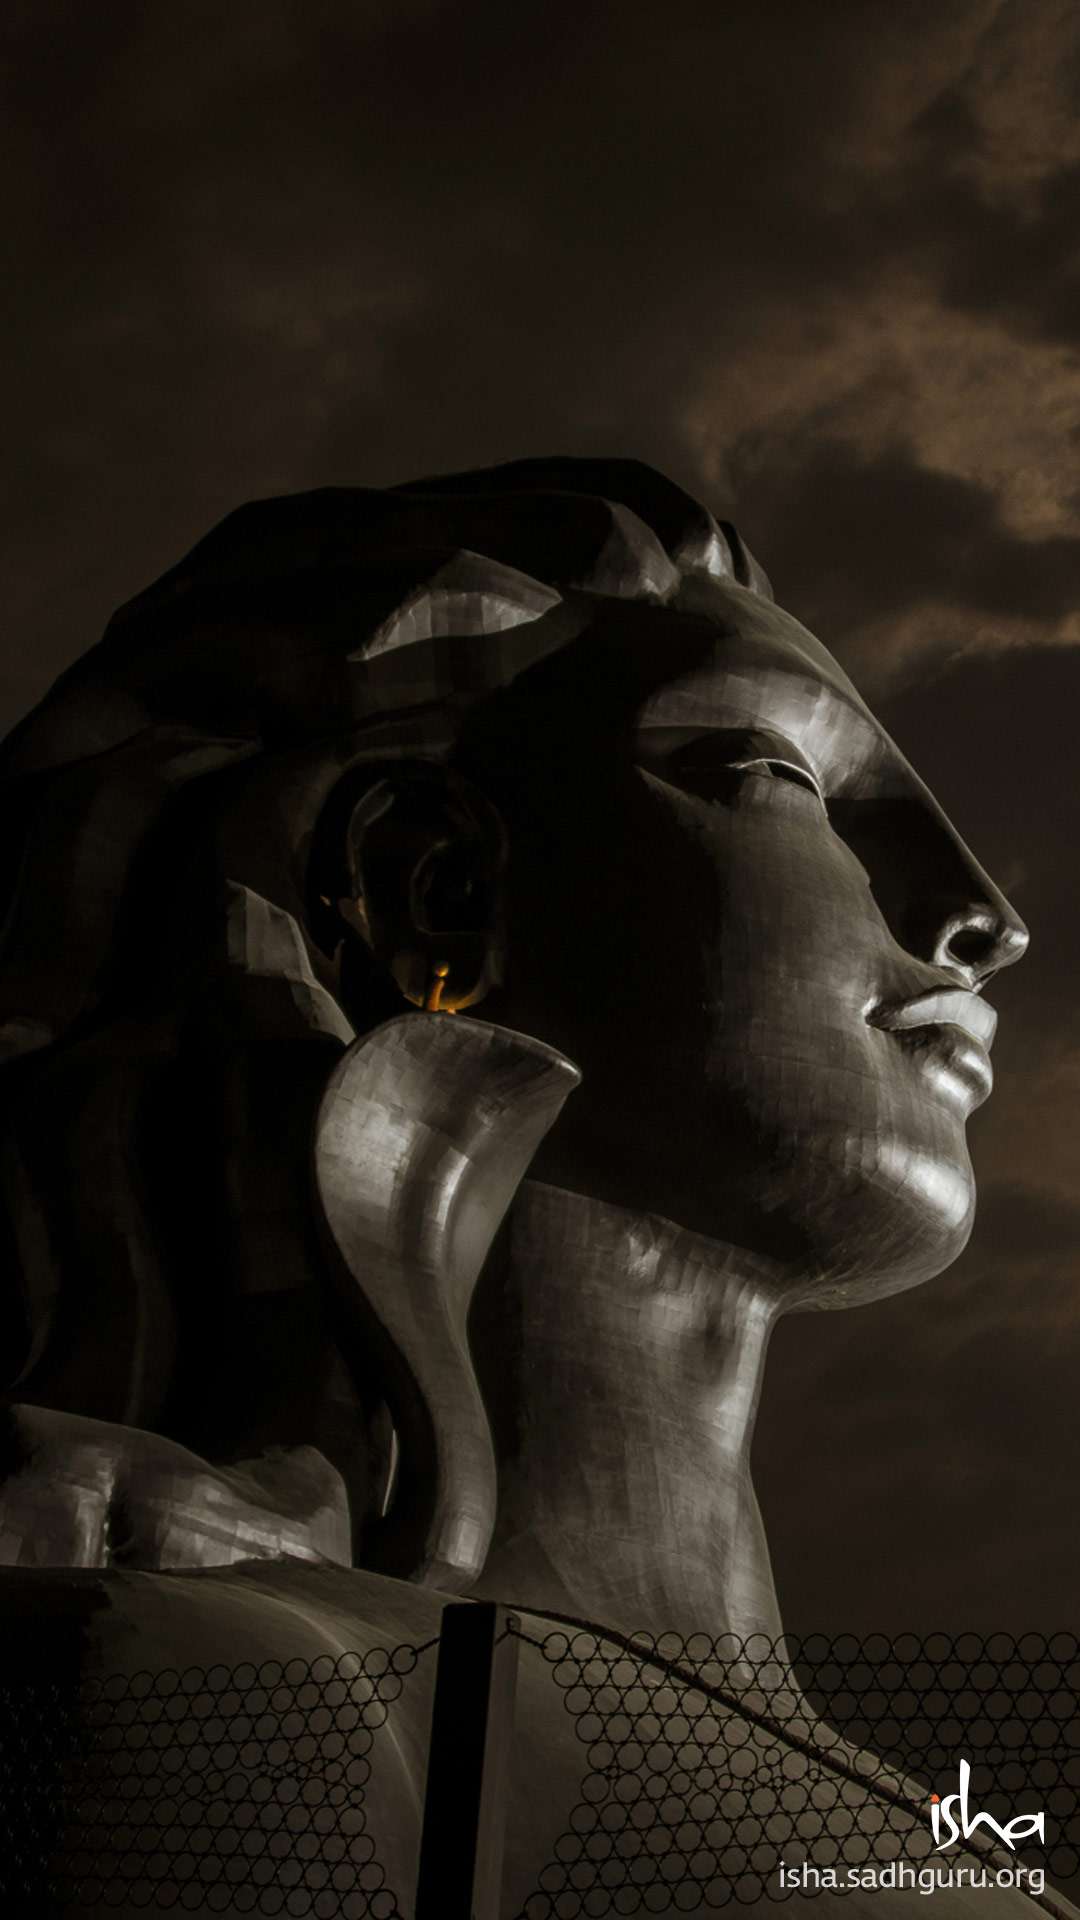 60 Shiva Adiyogi Wallpapers Hd Free Download For Mobile And Desktop